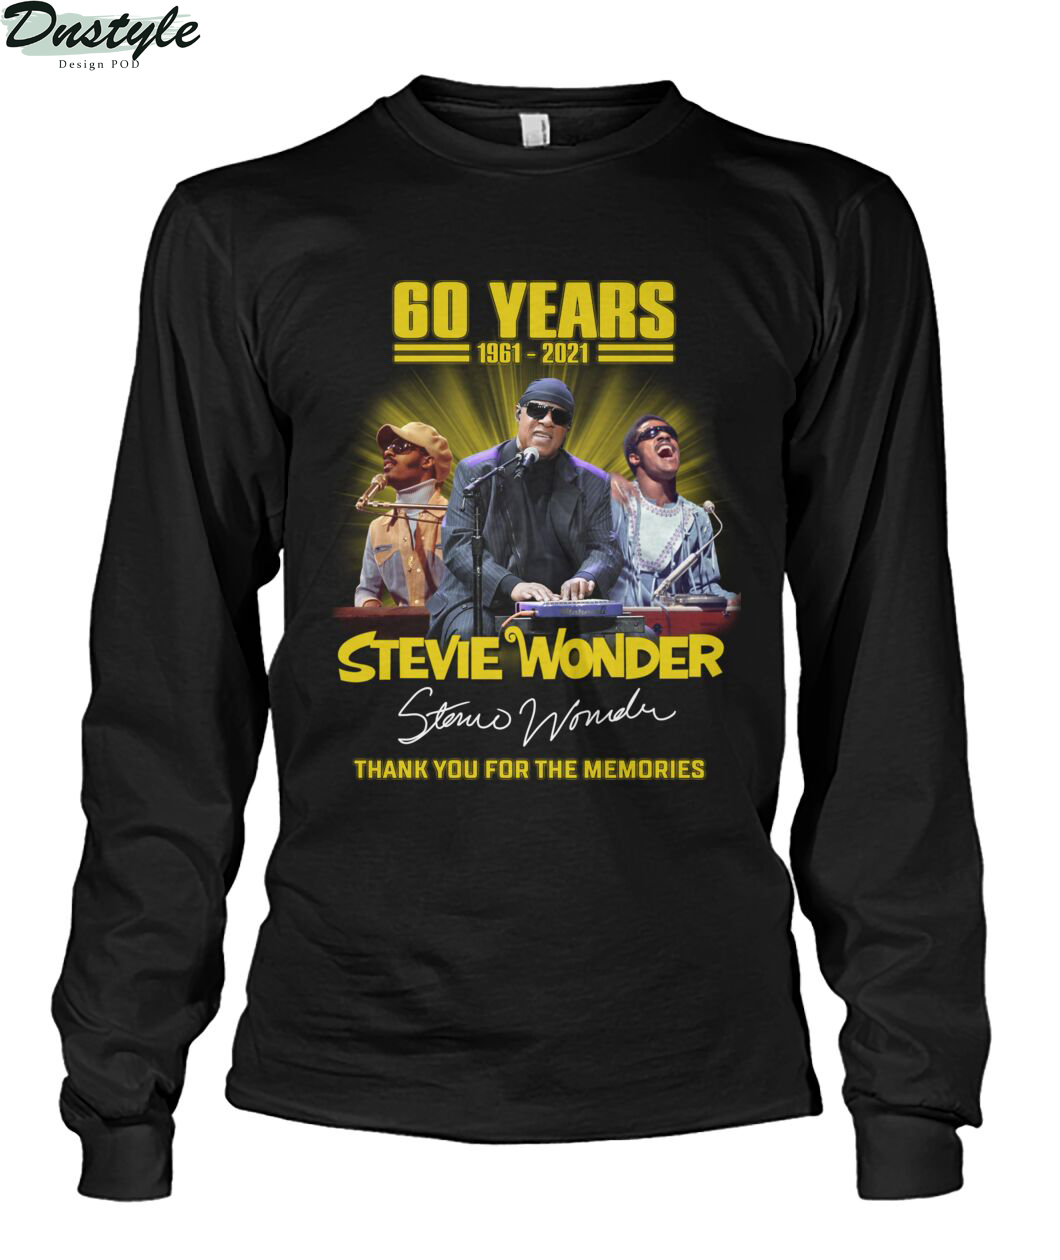 60 years Stevie Wonder signature thank you for the memories long sleeve